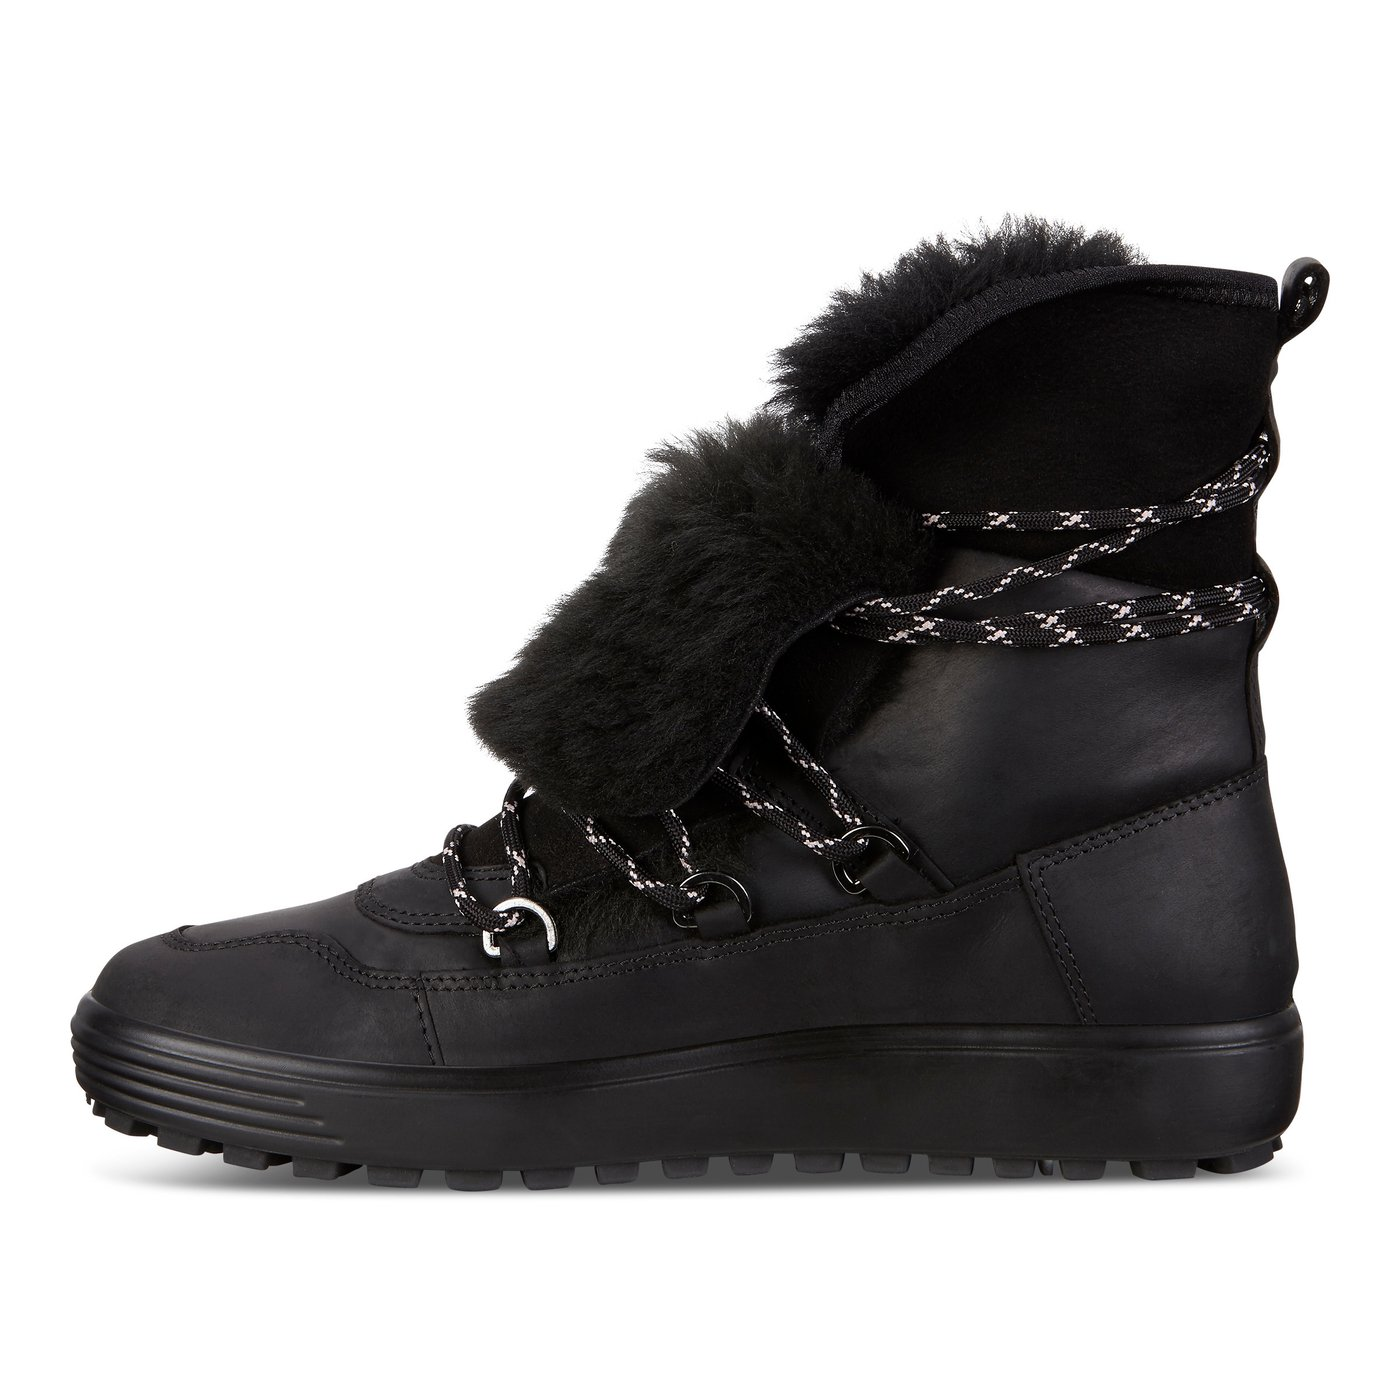 ECCO Womens Soft 7 TRED Mid